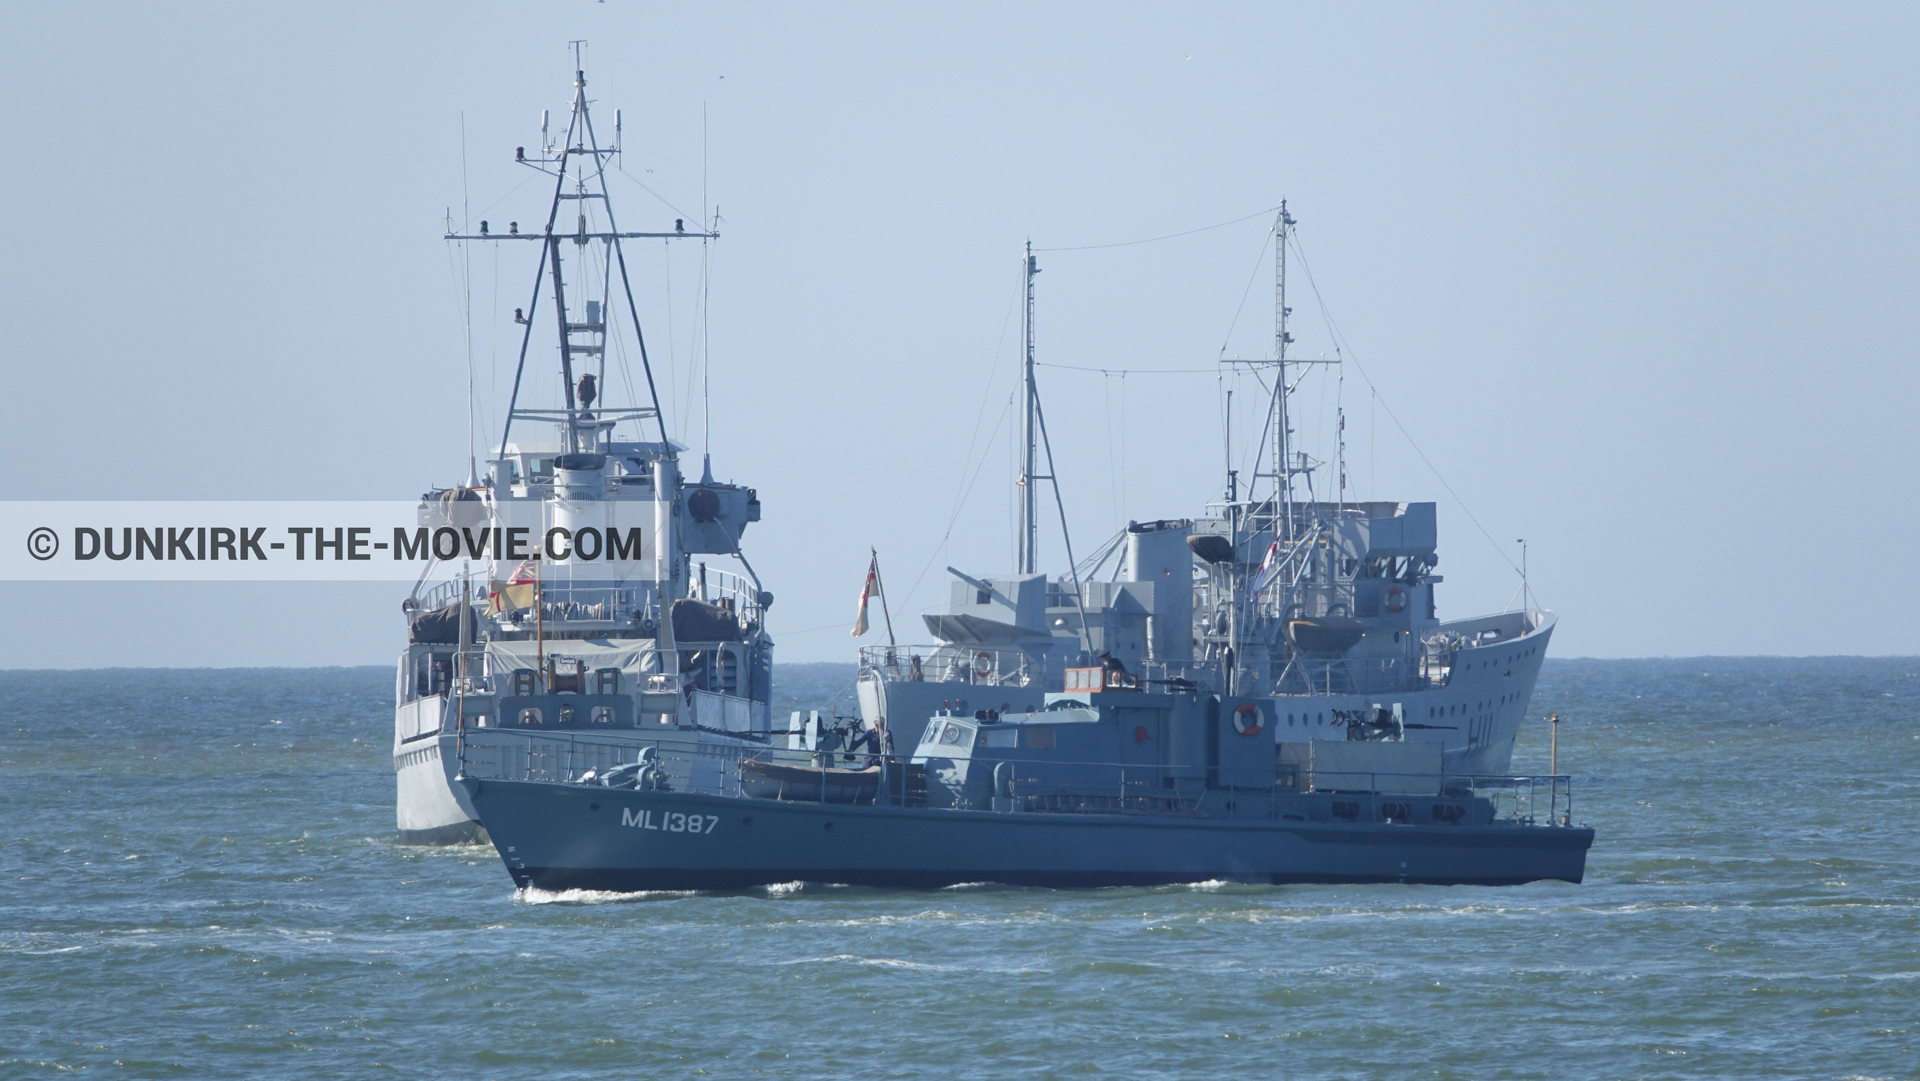 Picture with boat, blue sky, HMS Medusa - ML1387, calm sea,  from behind the scene of the Dunkirk movie by Nolan